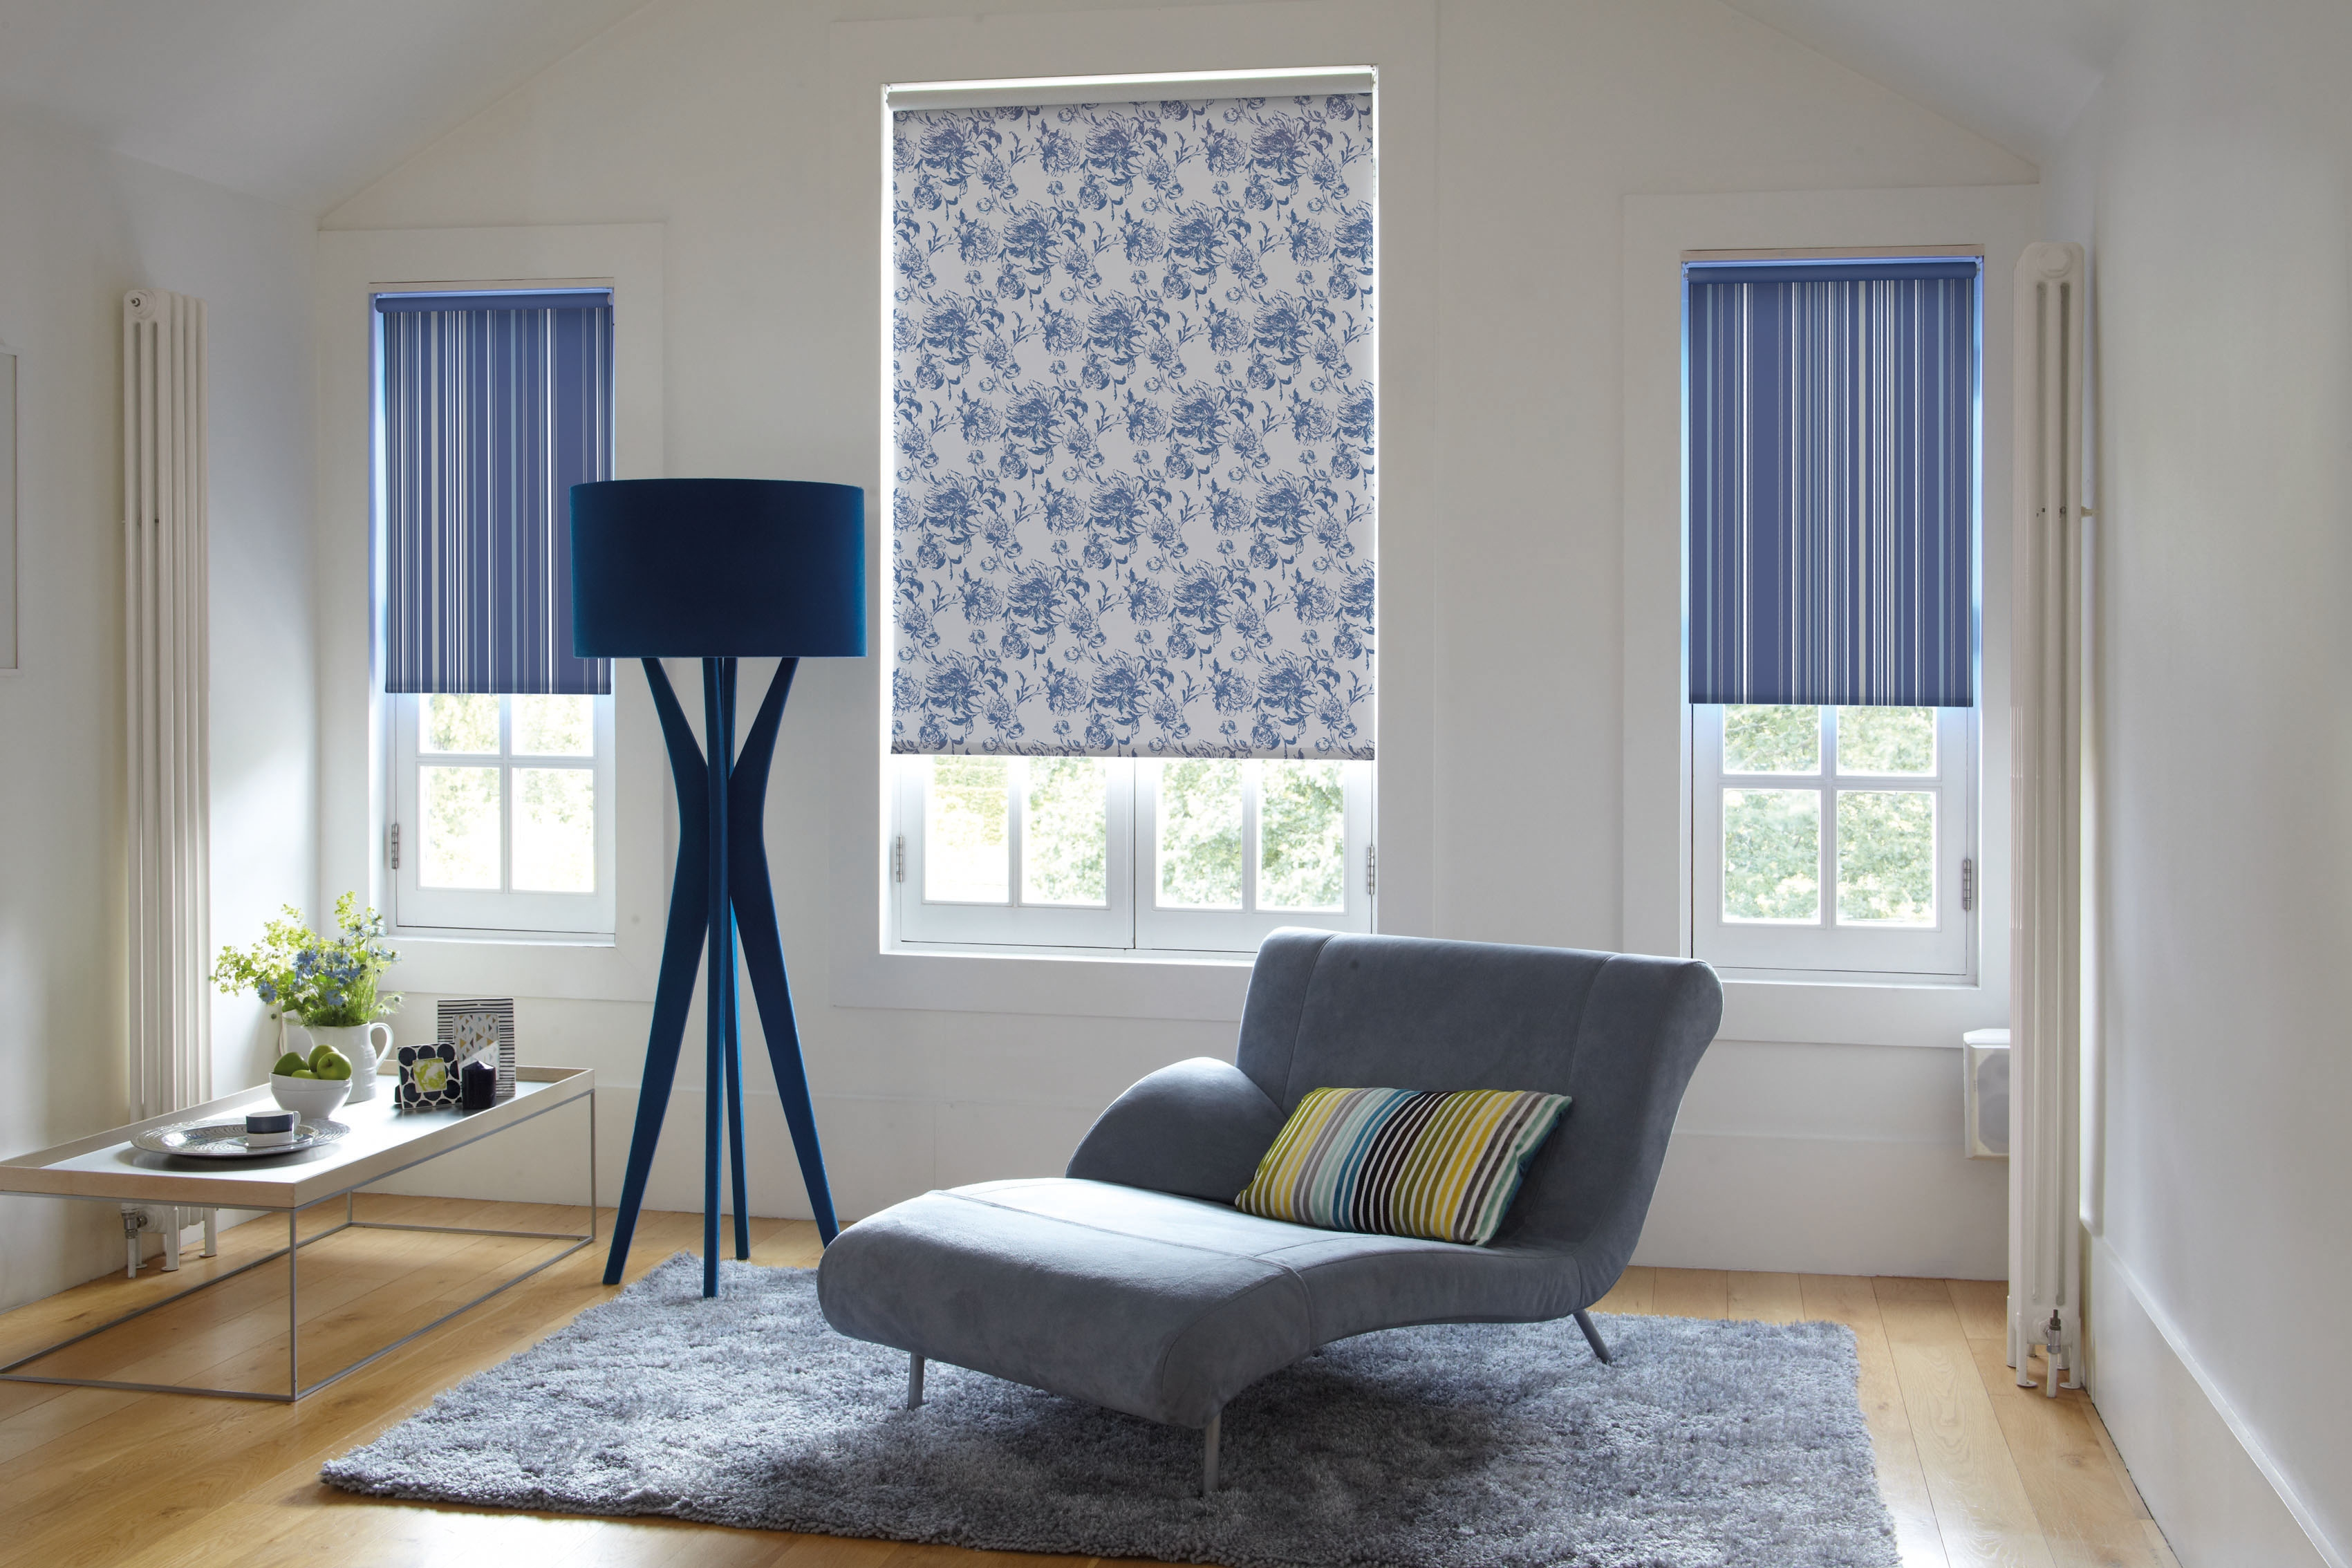 15 Best Ideas Blue And White Striped Roman Blinds